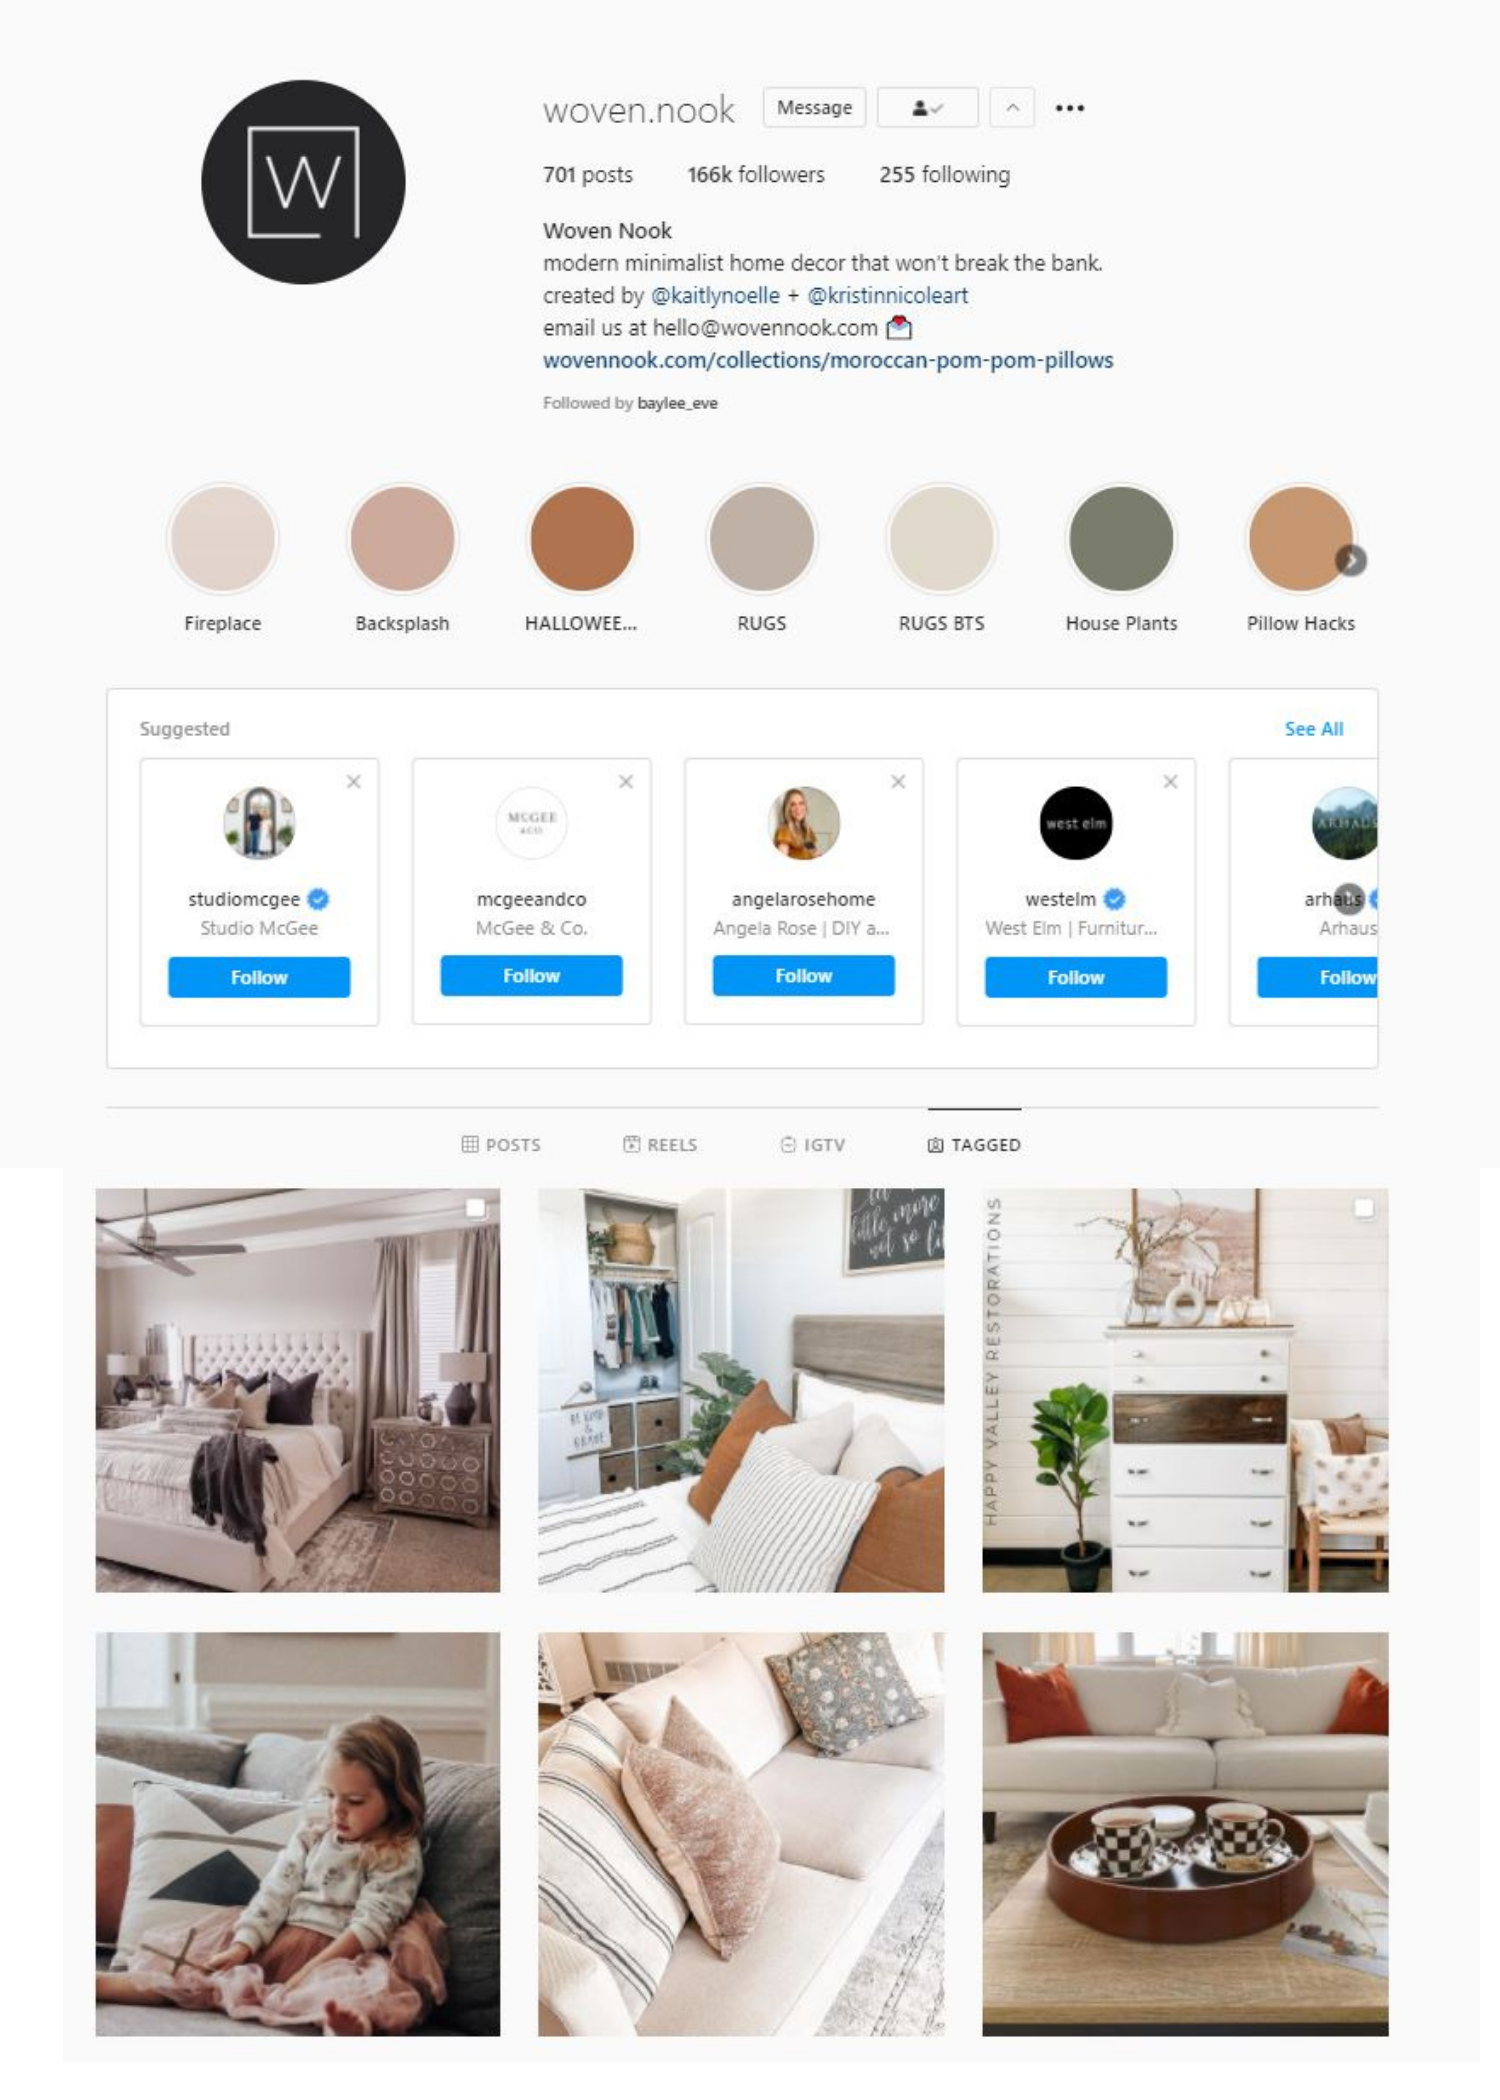 Invite people to become brand ambassadors on Instagram